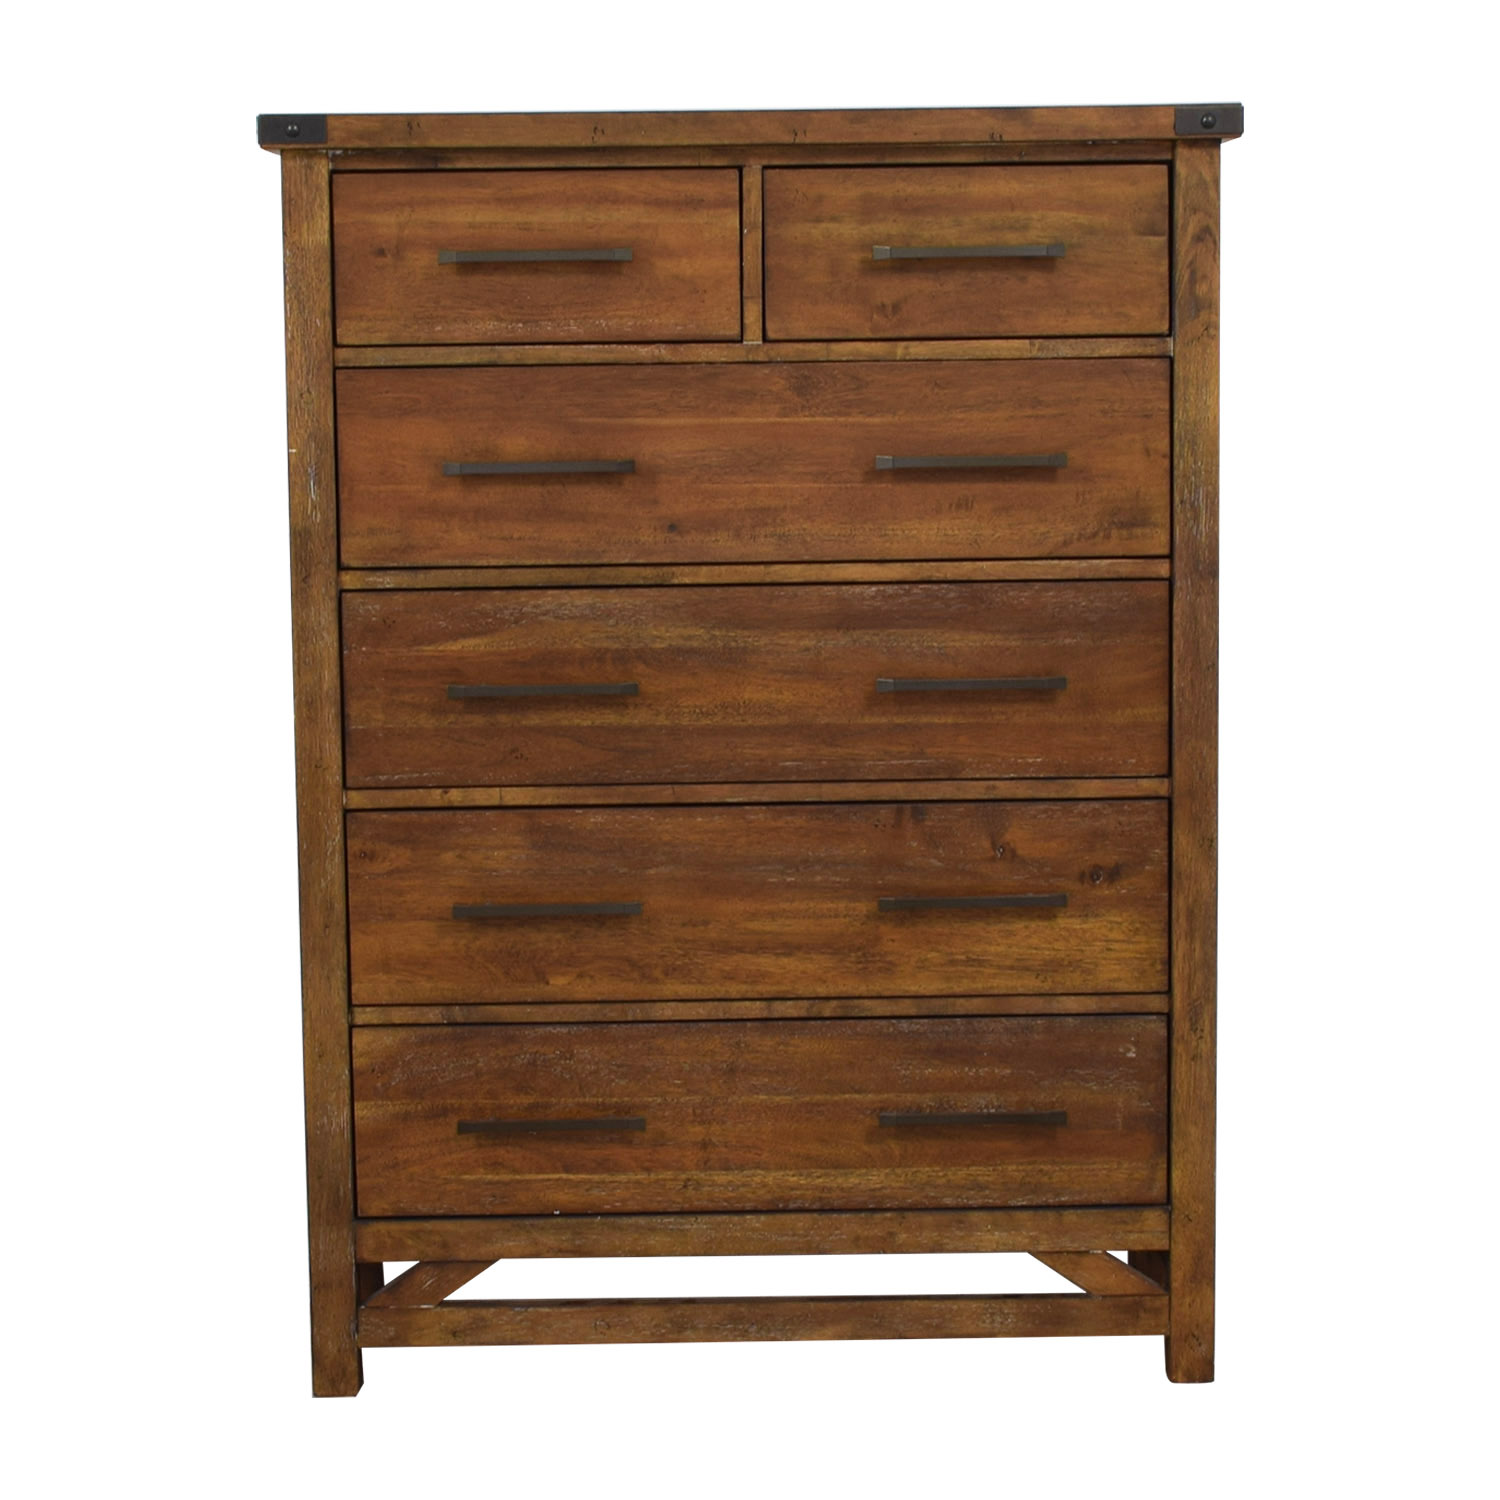 Walter of Wabash Six-Drawer Tall Chest of Drawers / Storage